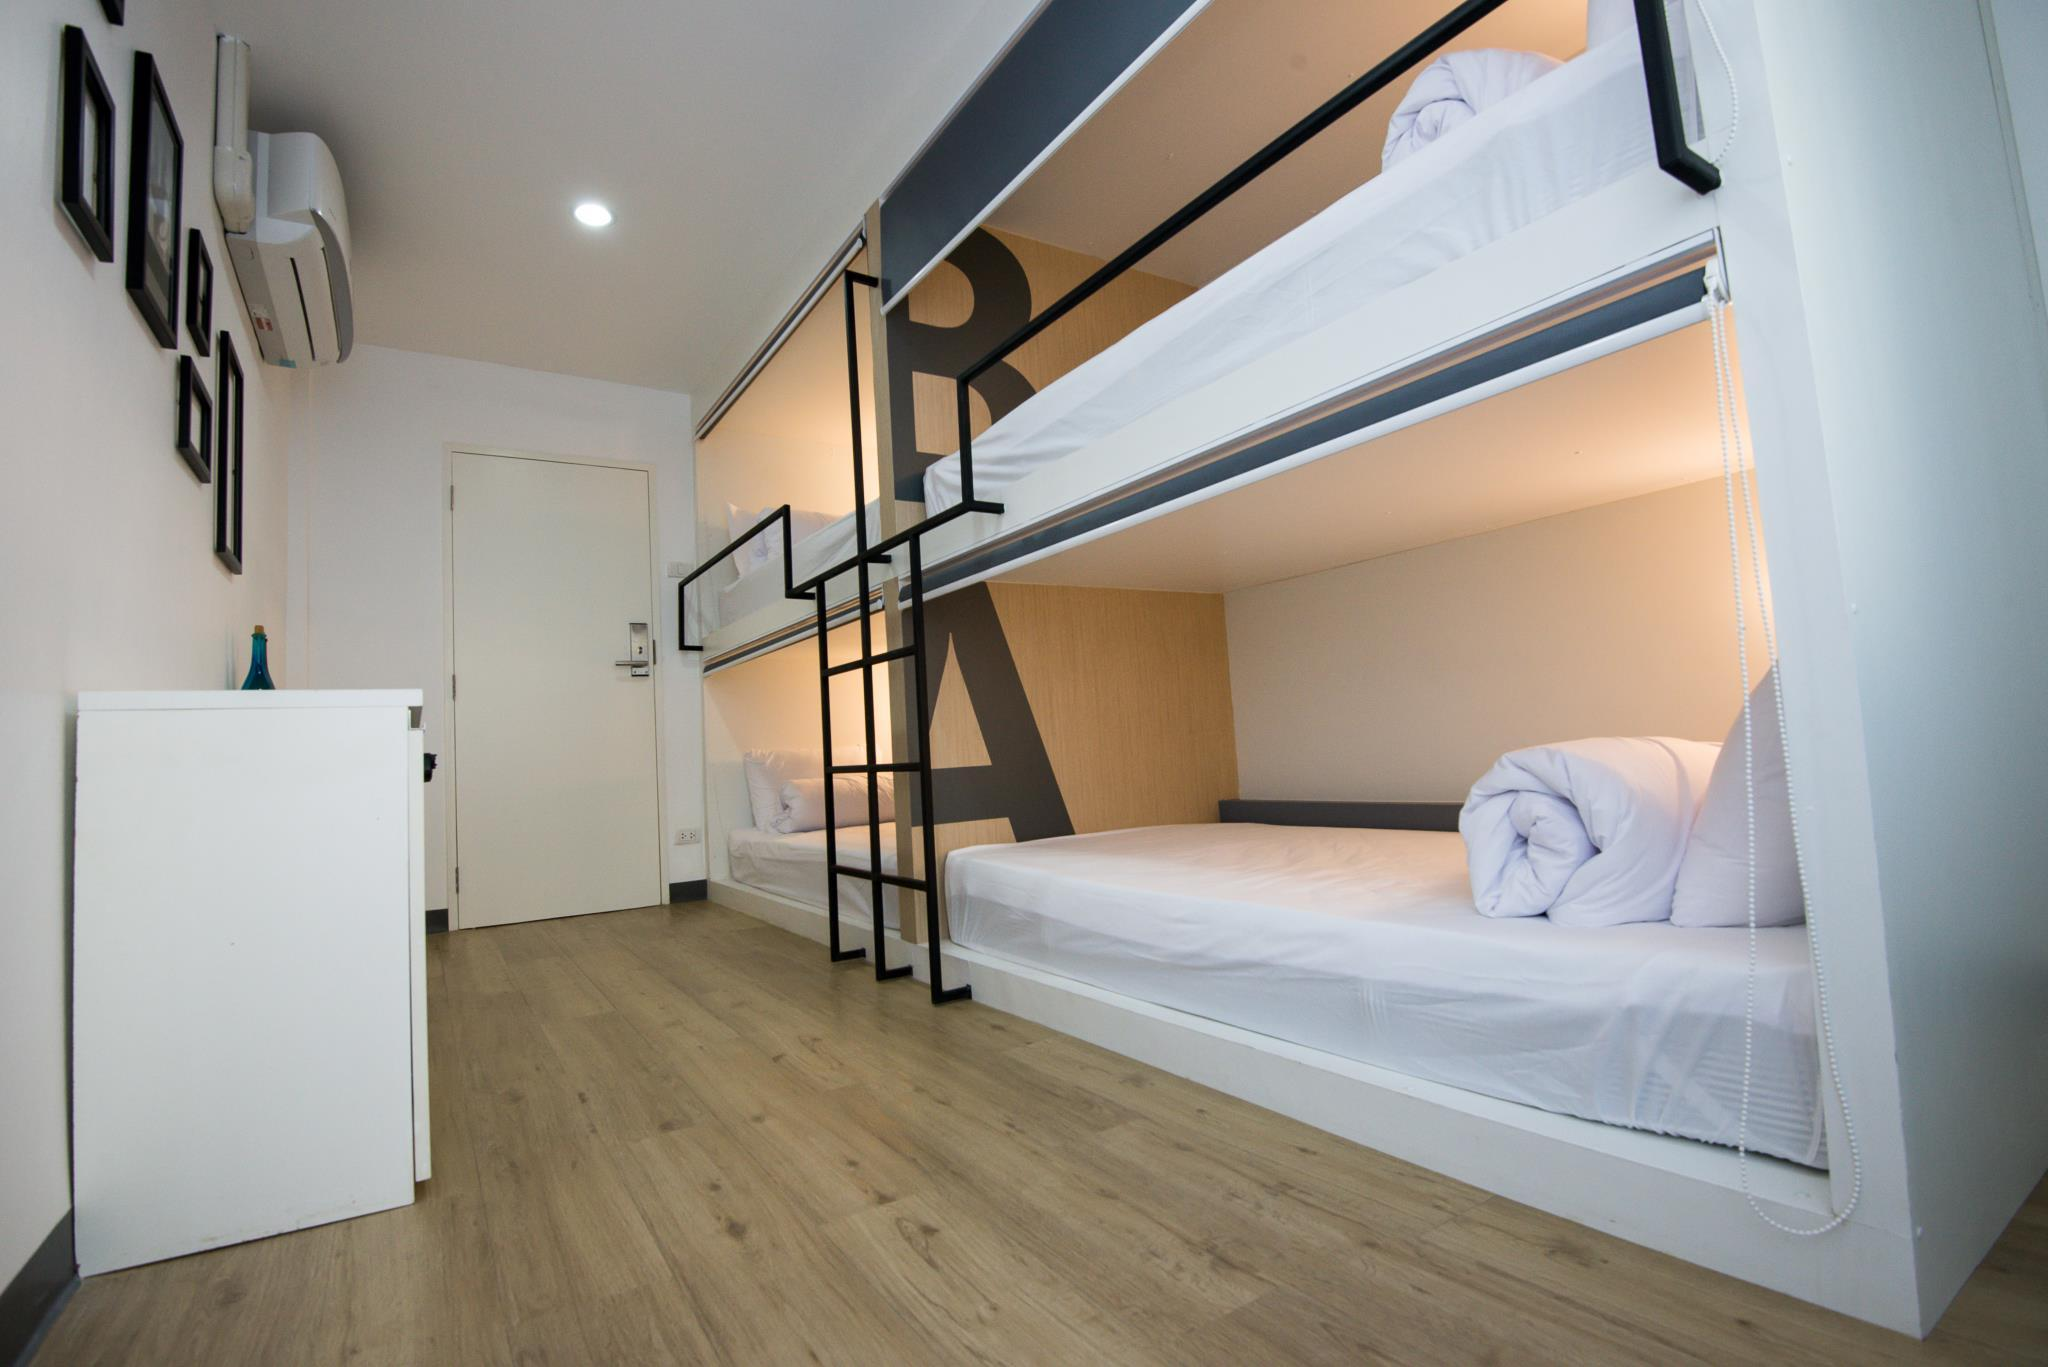 4-Bed Mixed Dormitory